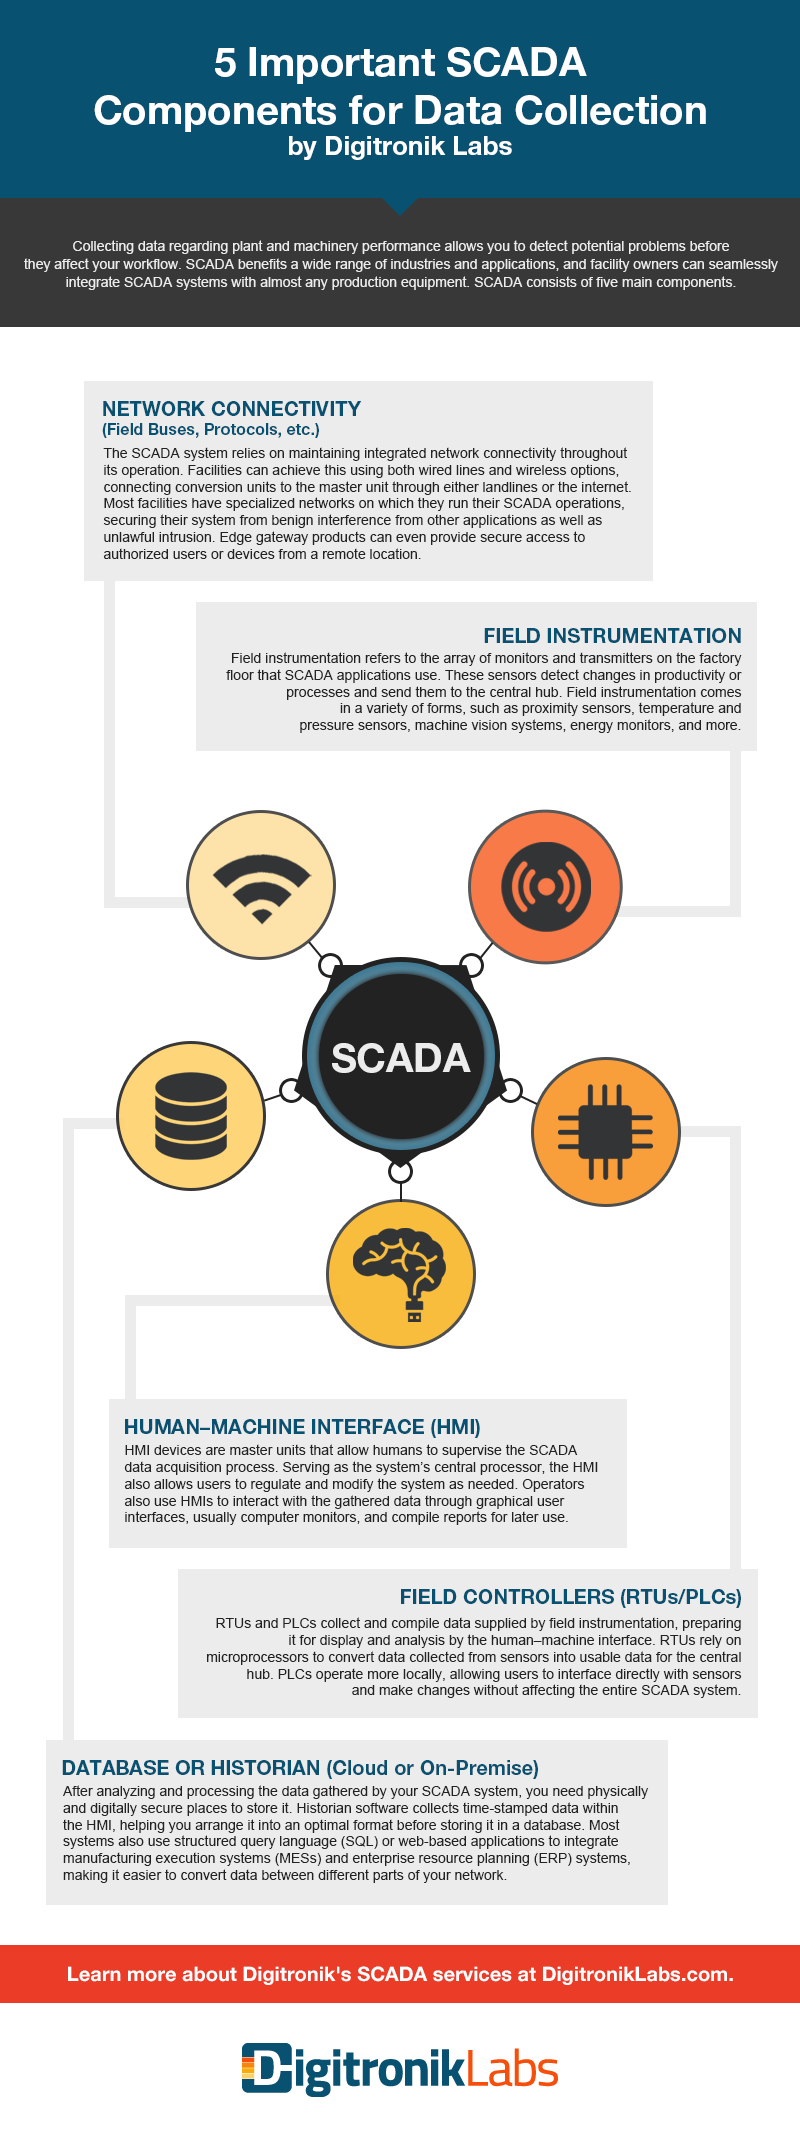 5 Important SCADA Components for Data Collection and Management